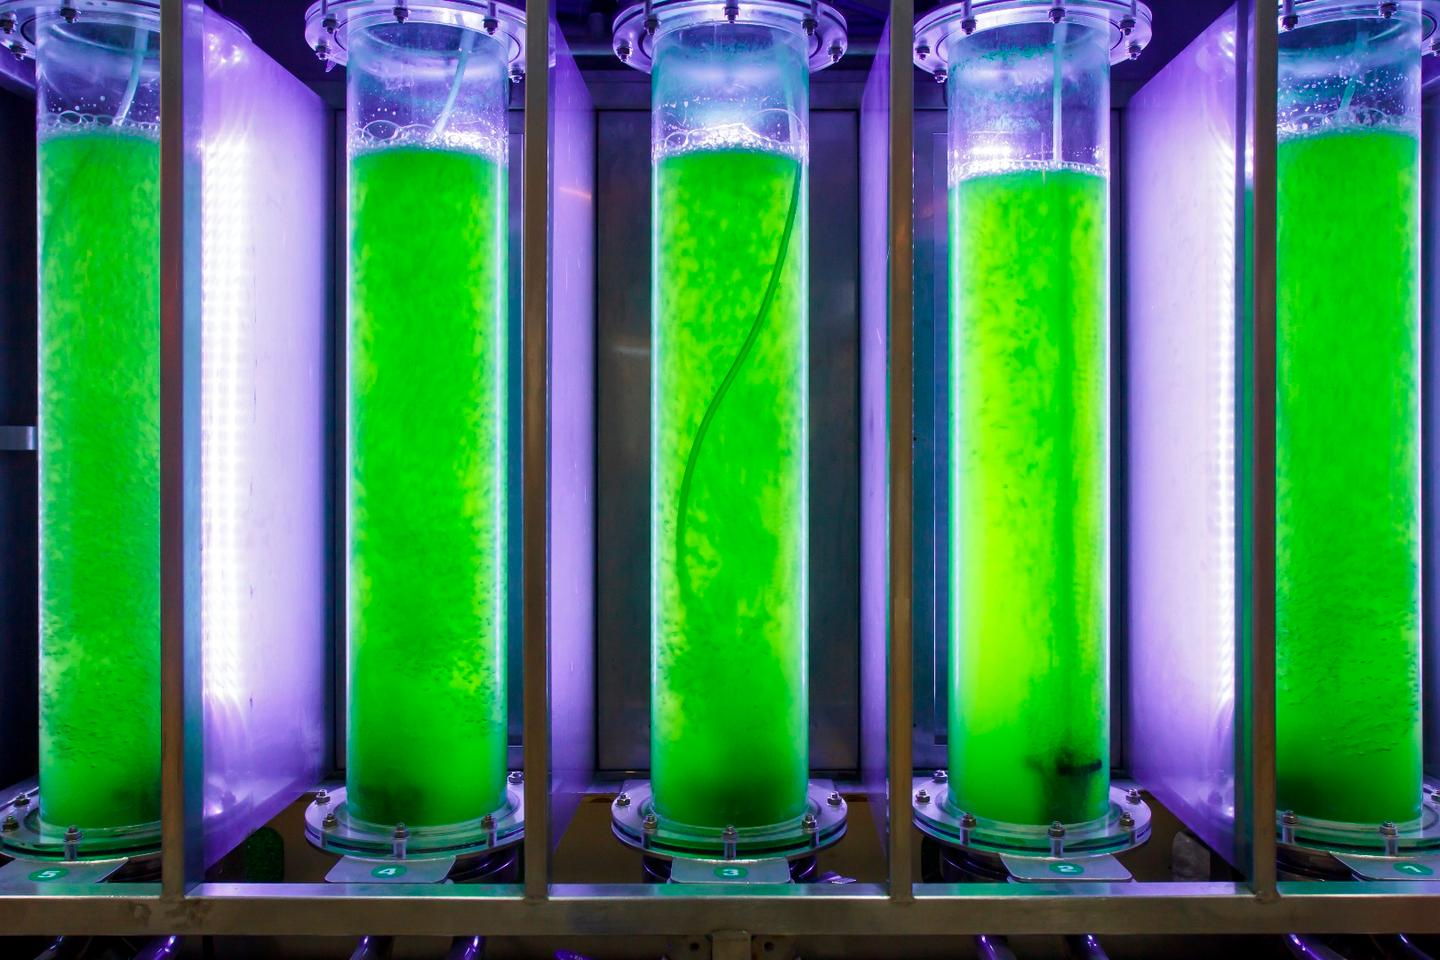 Microalgae being grown in tubes, in a traditional liquid growth medium